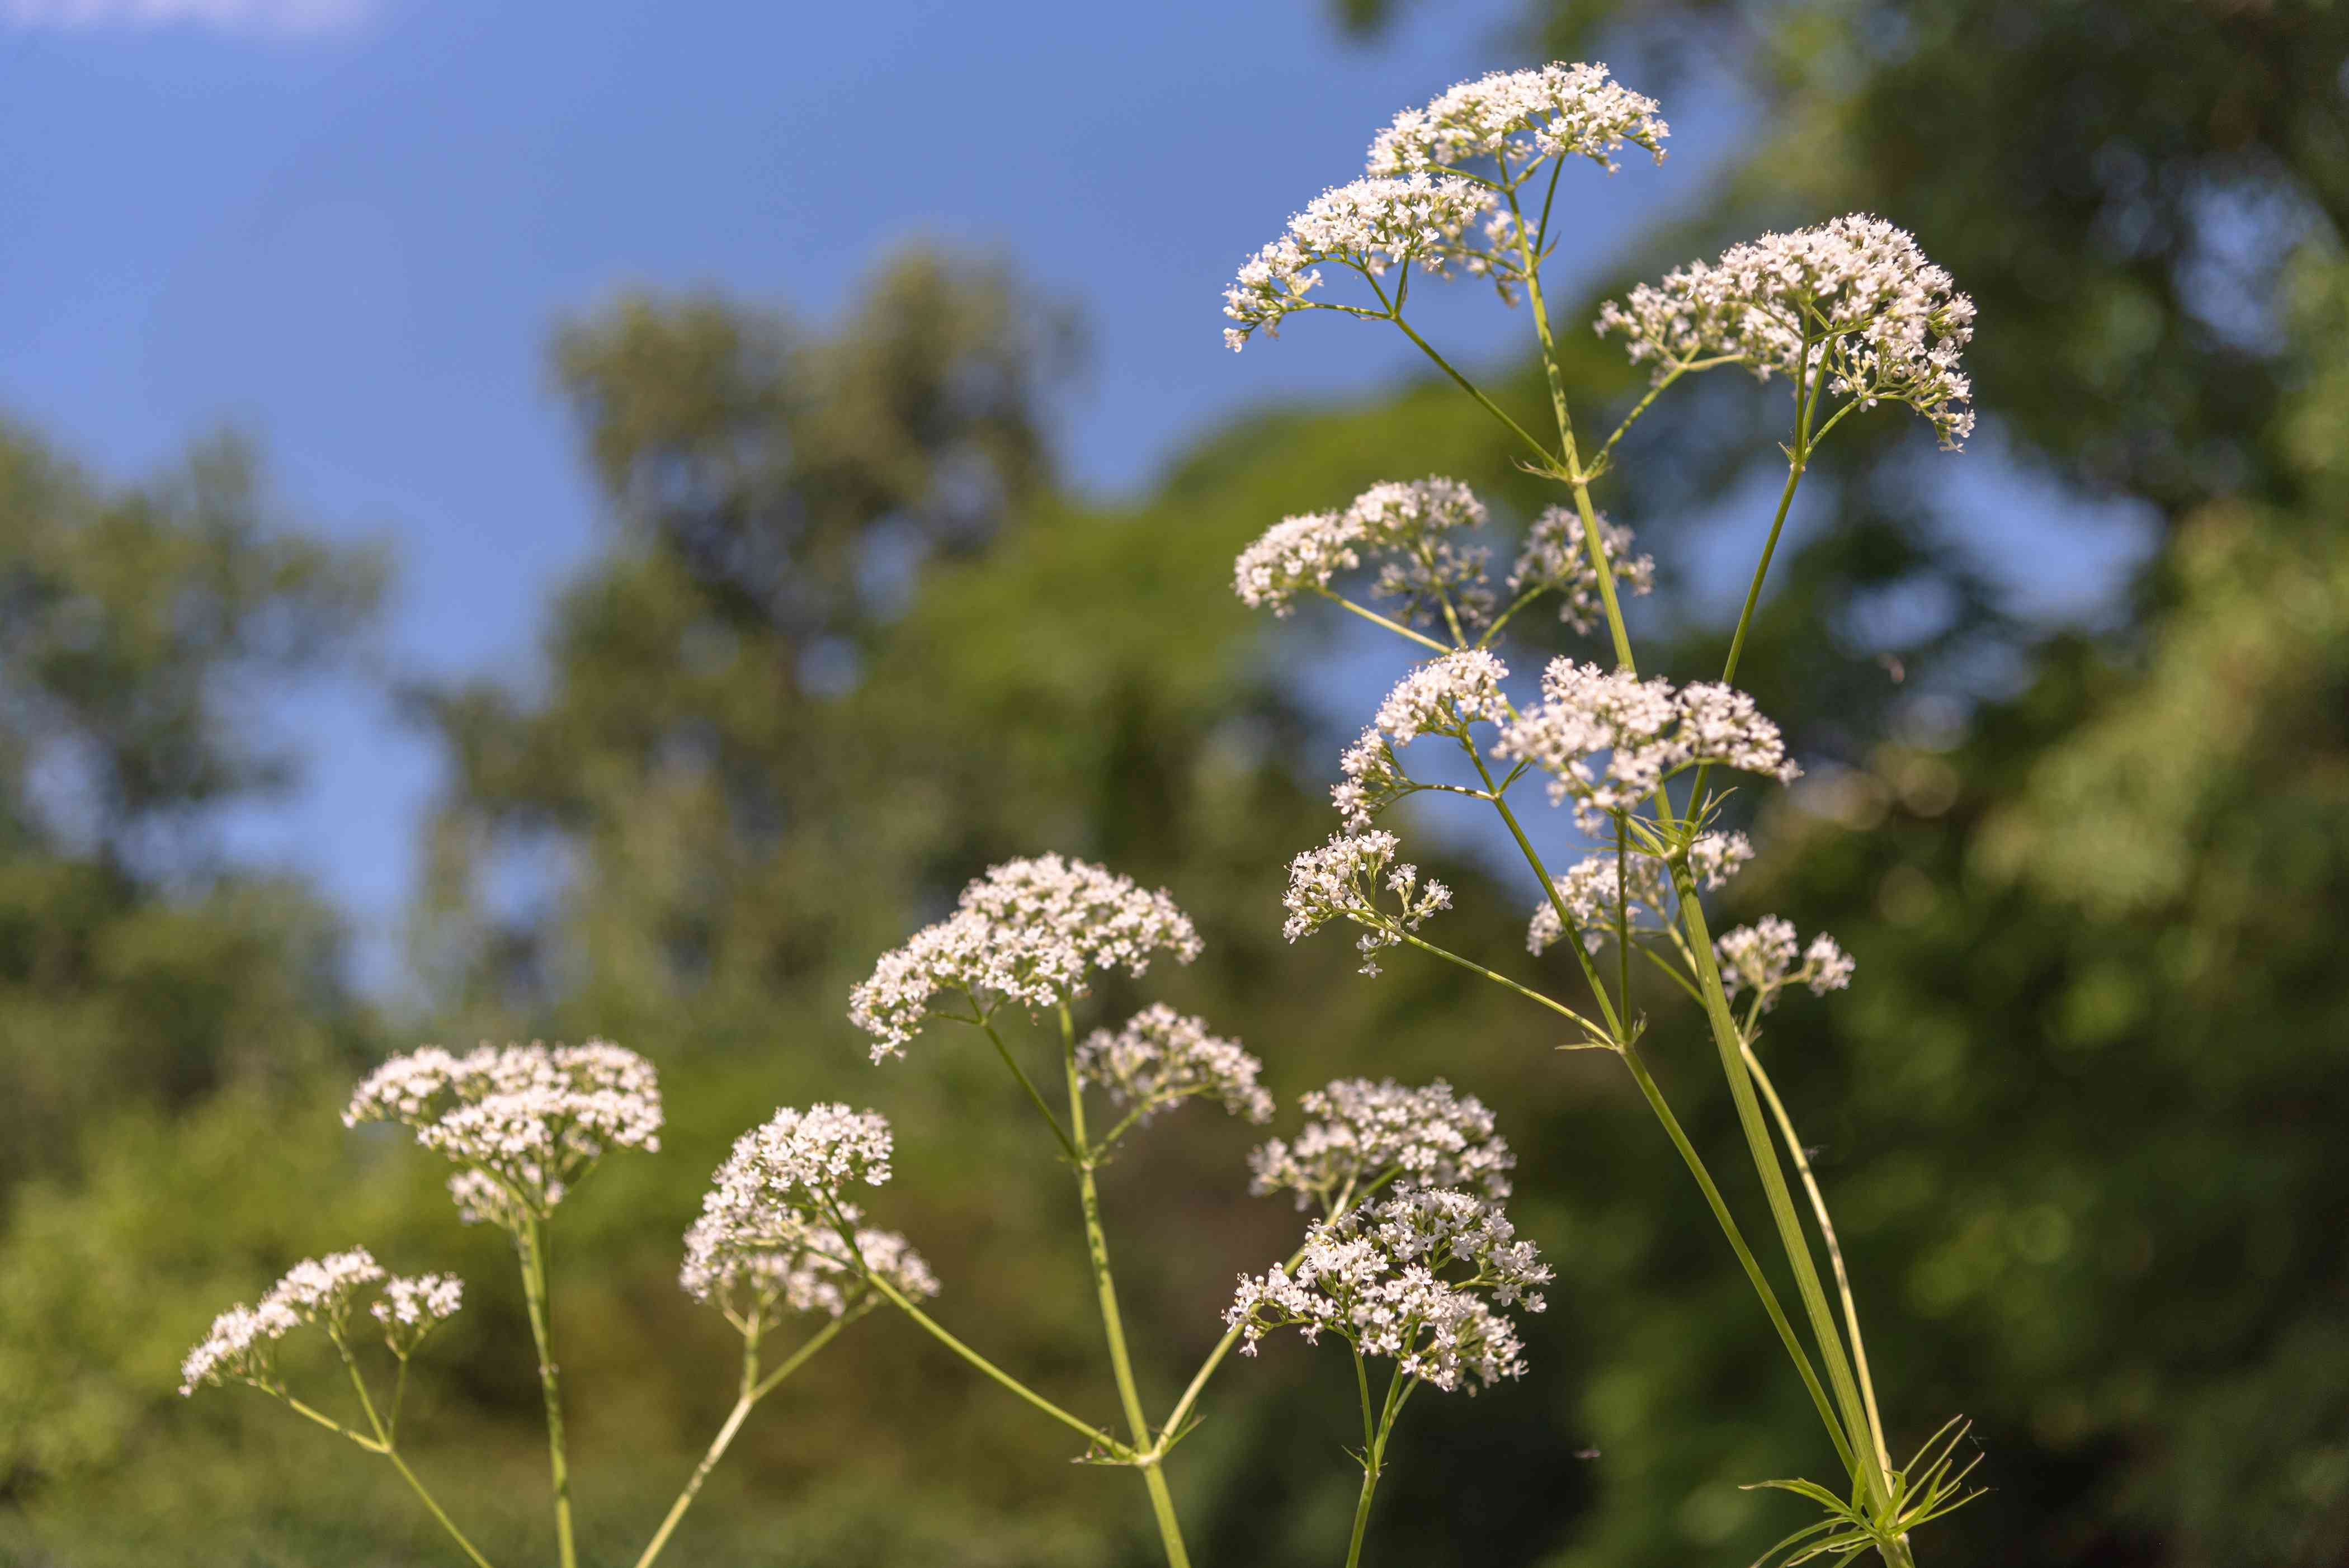 Valerian plant with thin flower stalks and small white flower clusters on top in sunlight